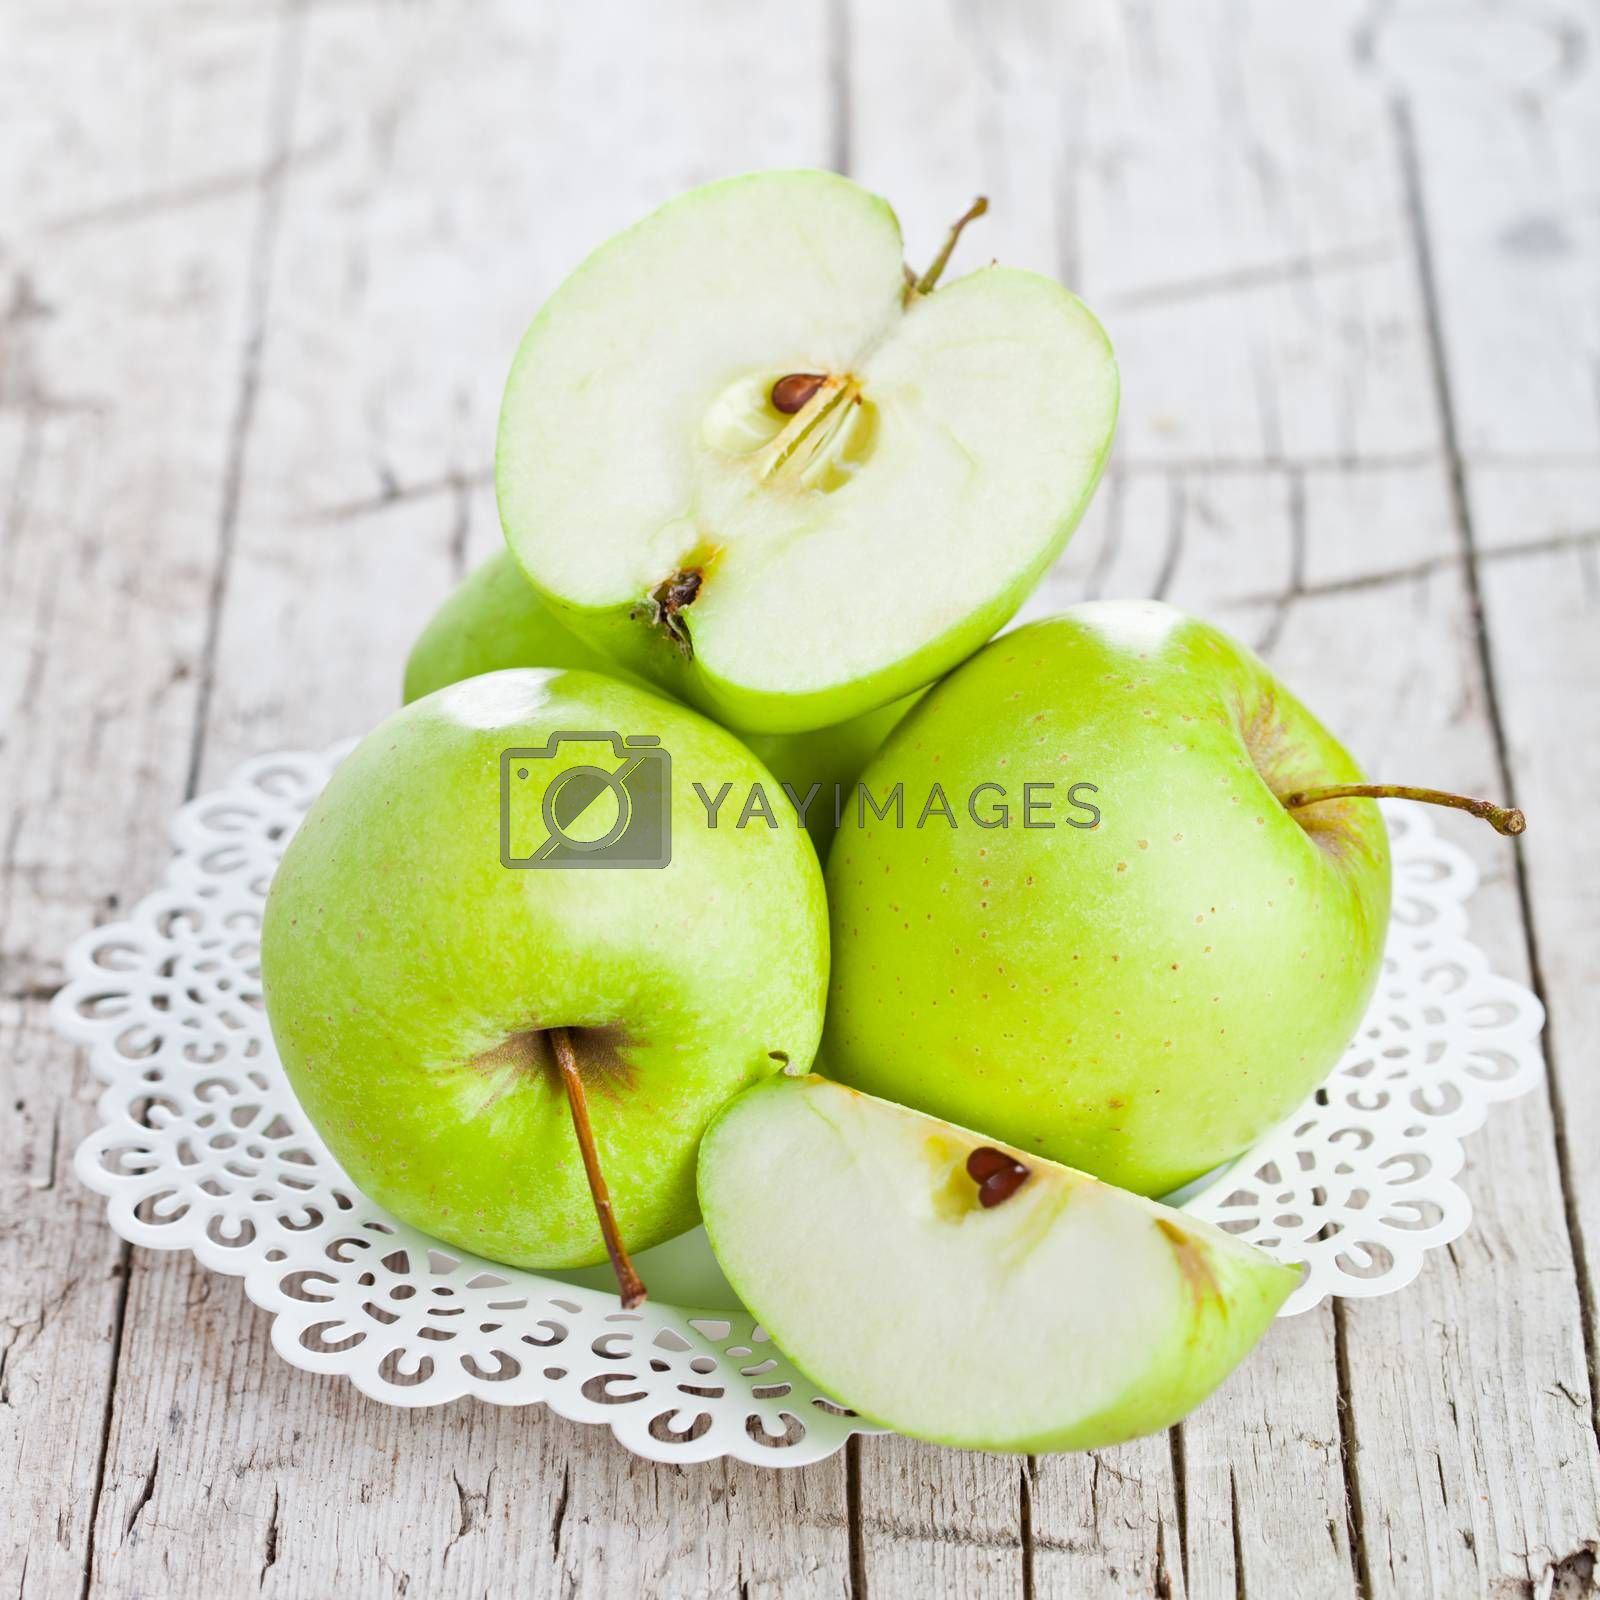 Royalty free image of ripe green apples  by marylooo